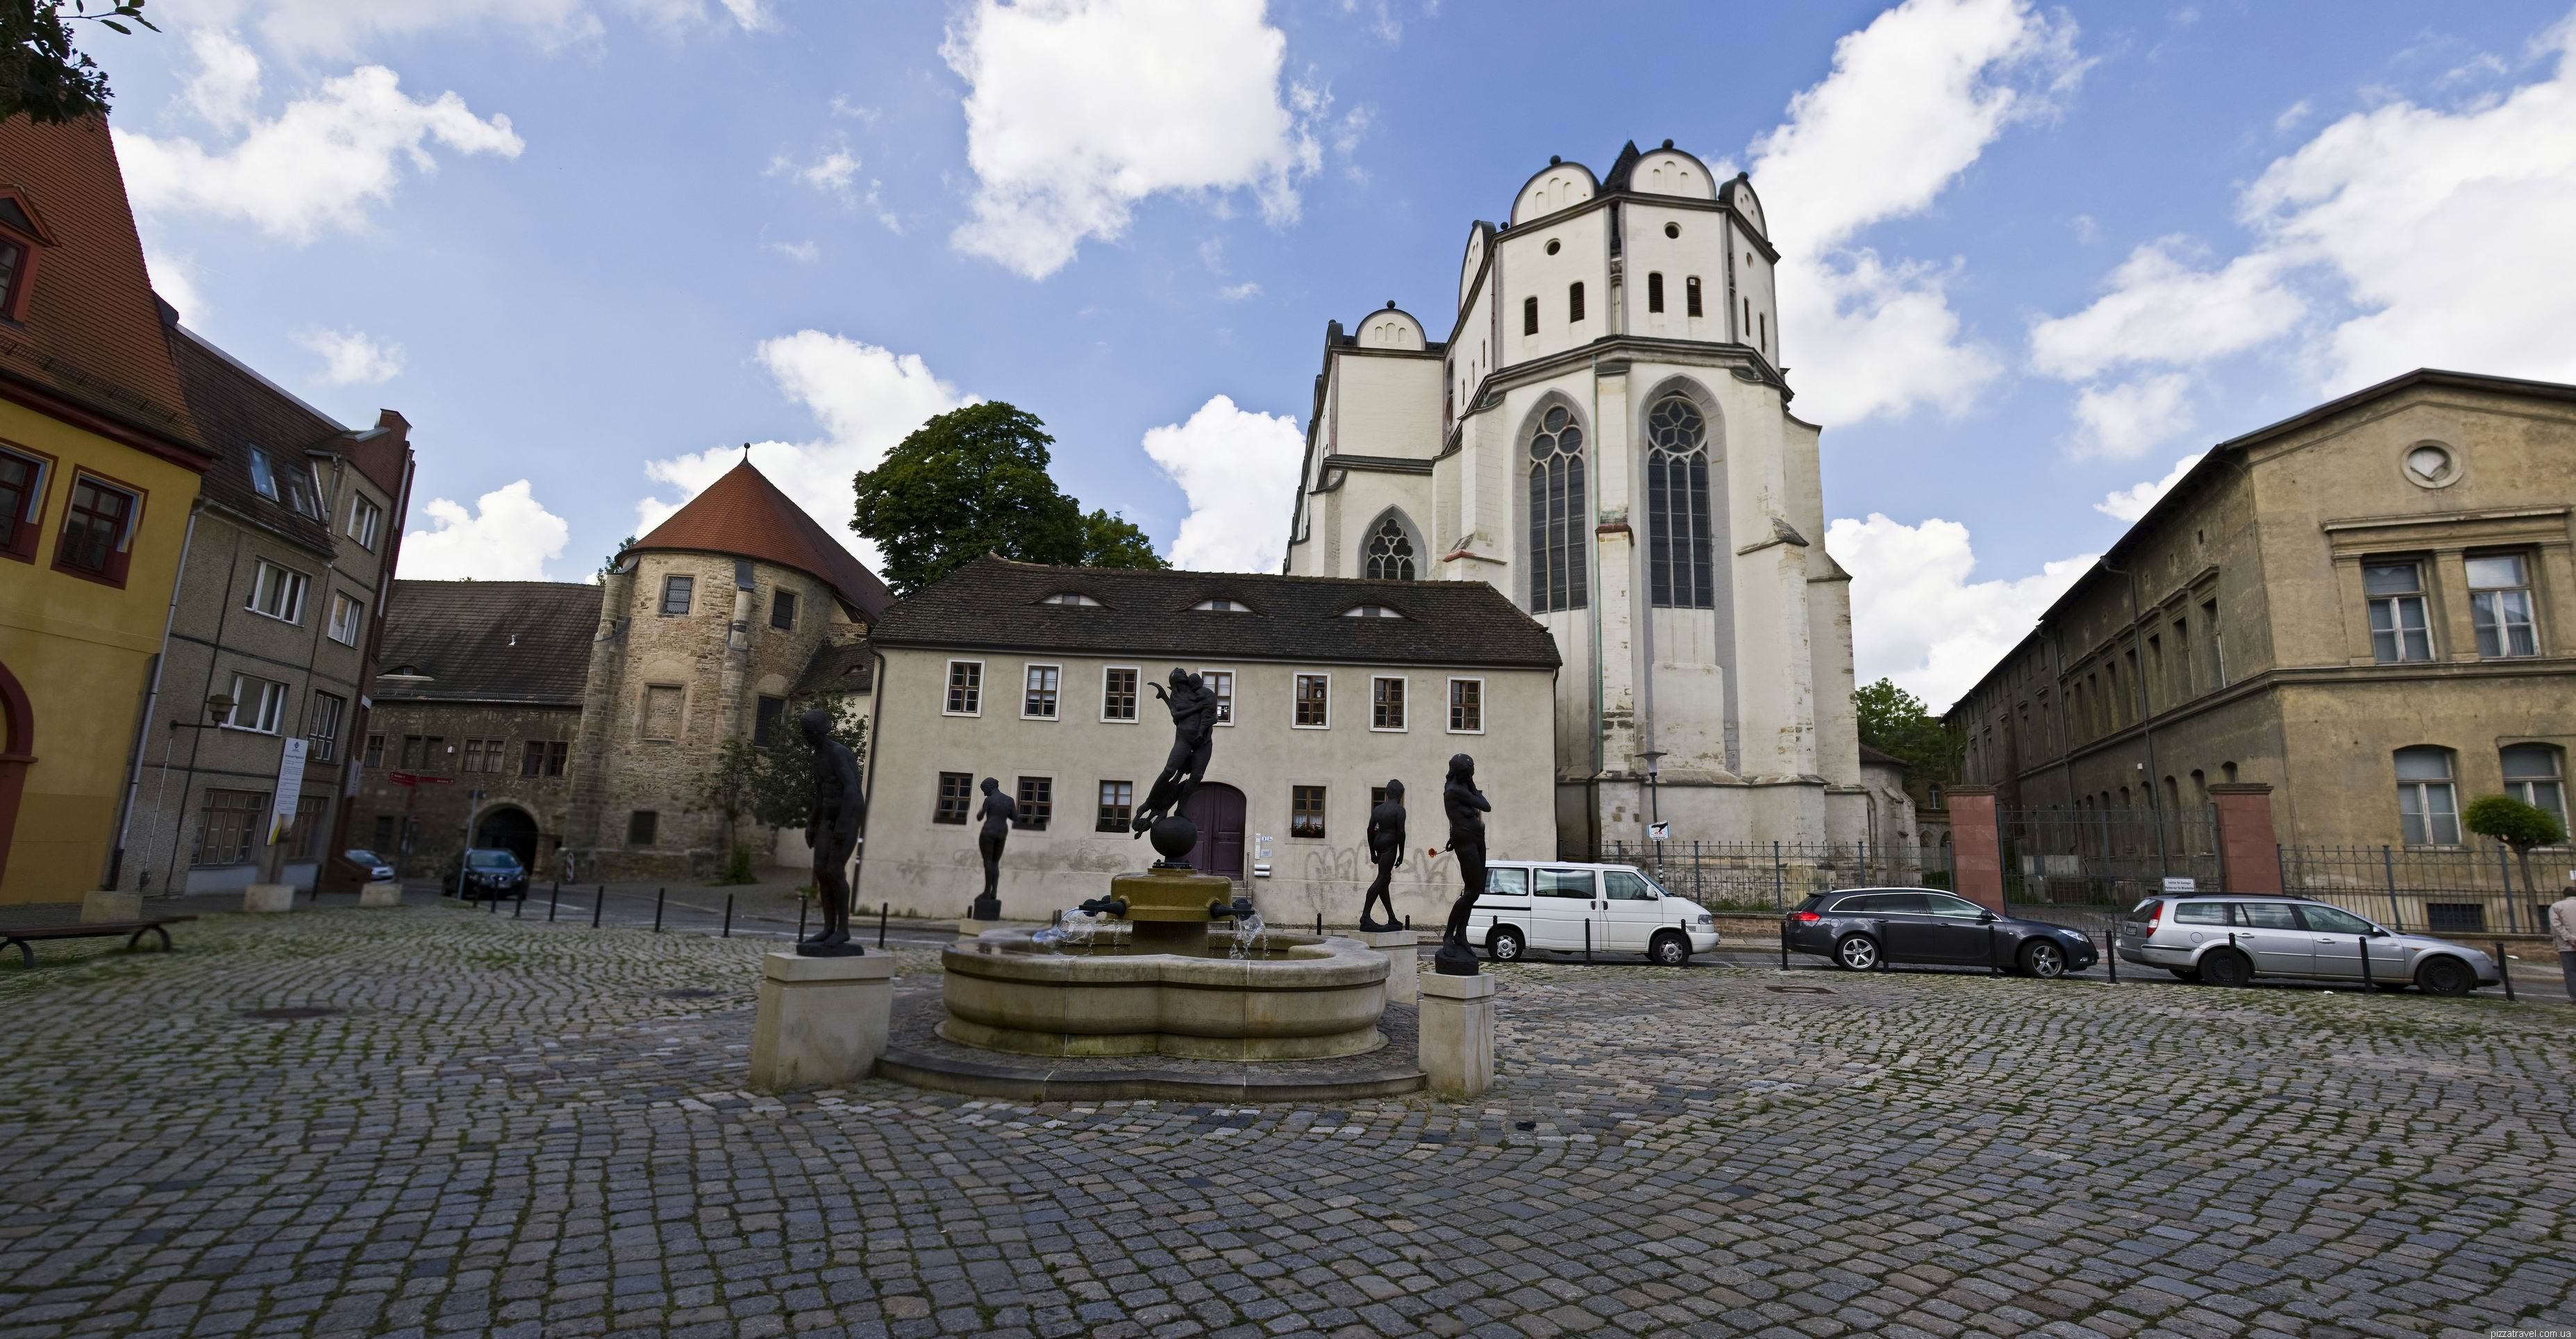 halle germany blog about interesting places